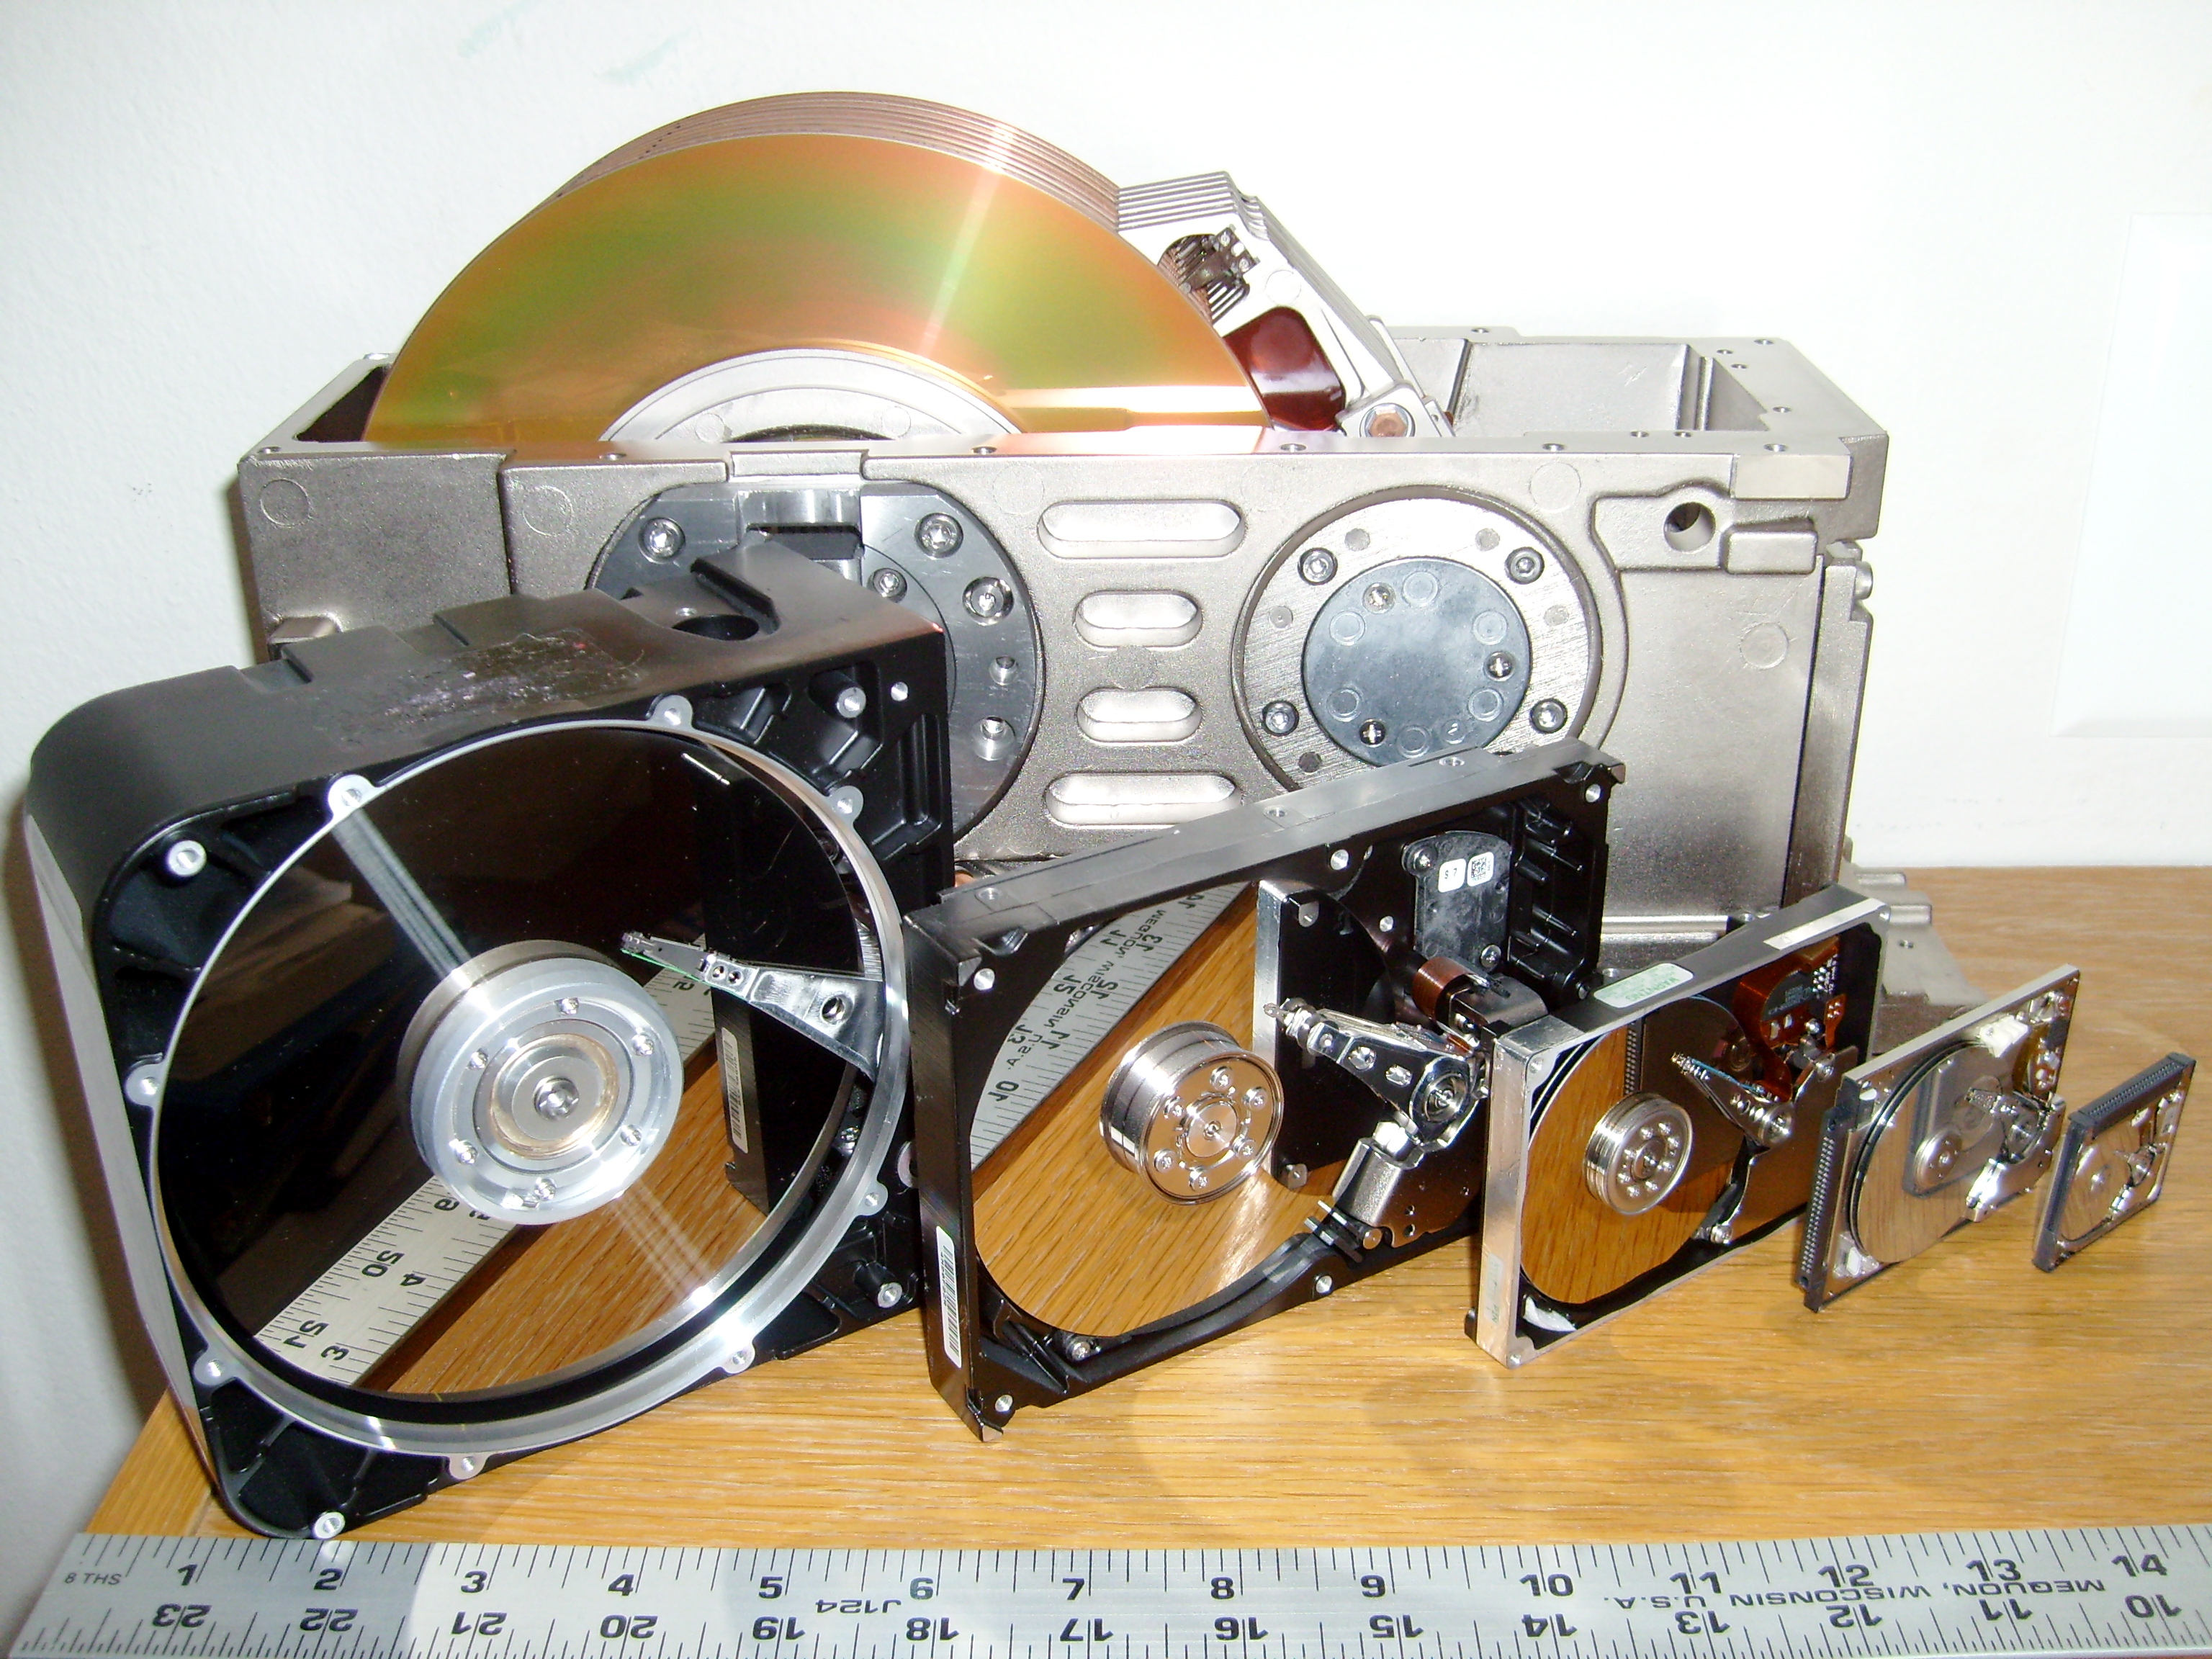 Six hard drives with 8 , 5.25 , 3.5 , 2.5 , 1.8 , and 1 hard disks with a ruler to show the length of platters and read-write heads.